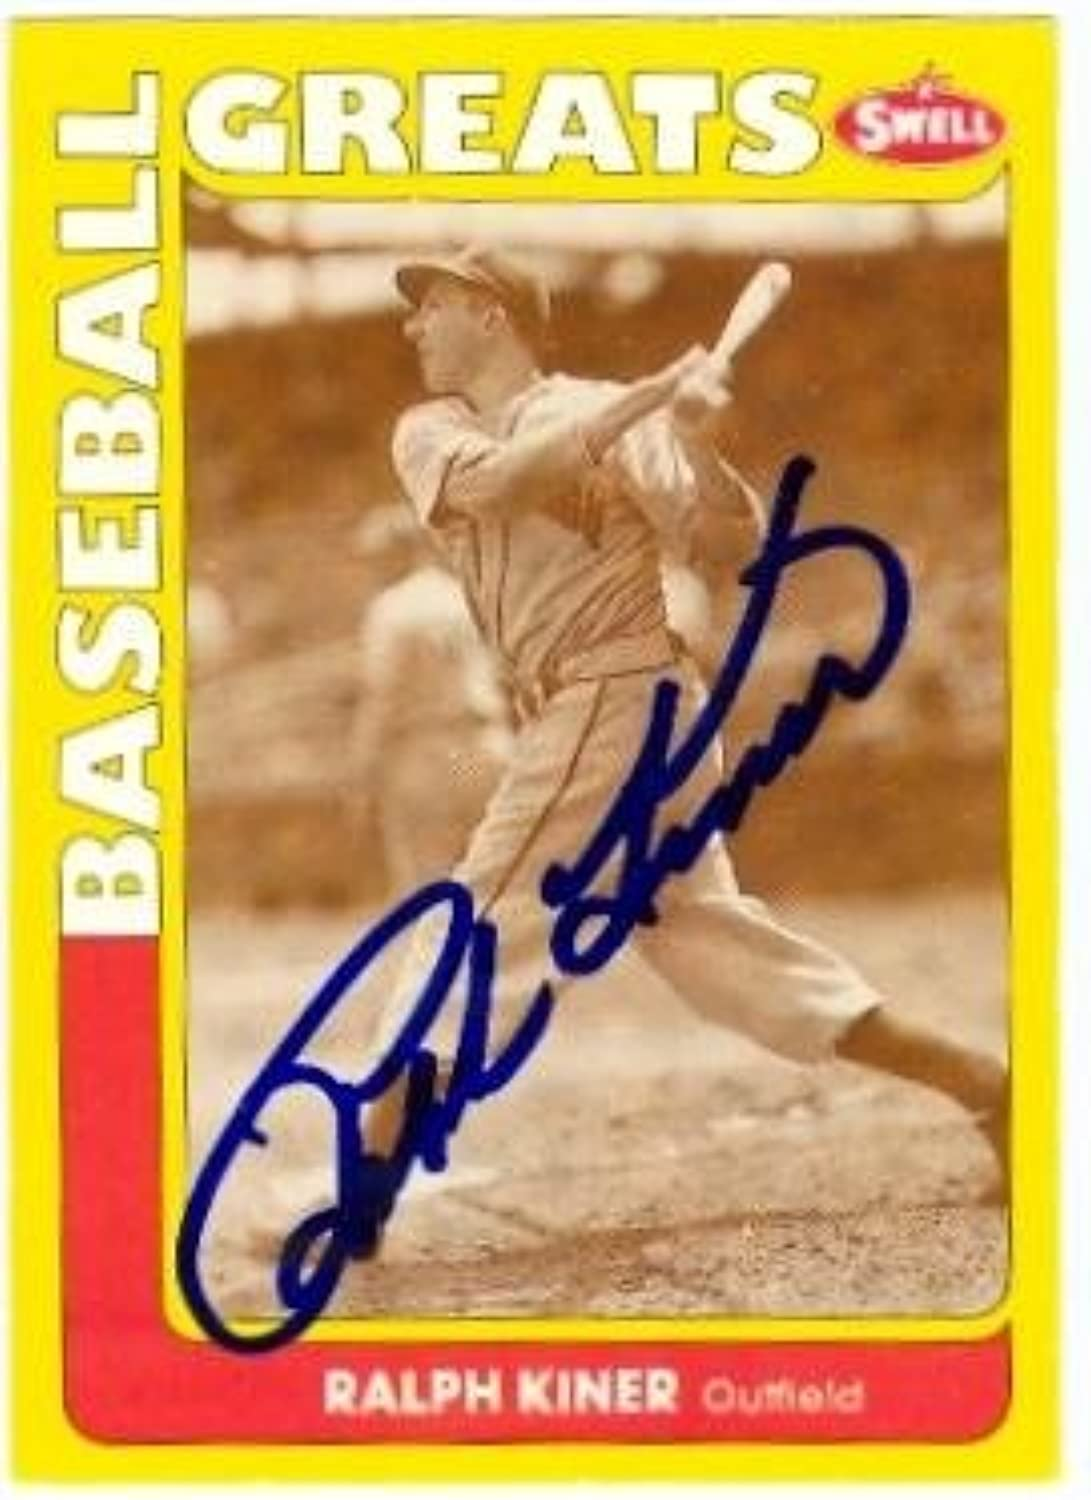 Ralph Kiner autographed Baseball Card (Pittsburgh Pirates) 1990 Swell Legends Card  Autographed Baseball Cards